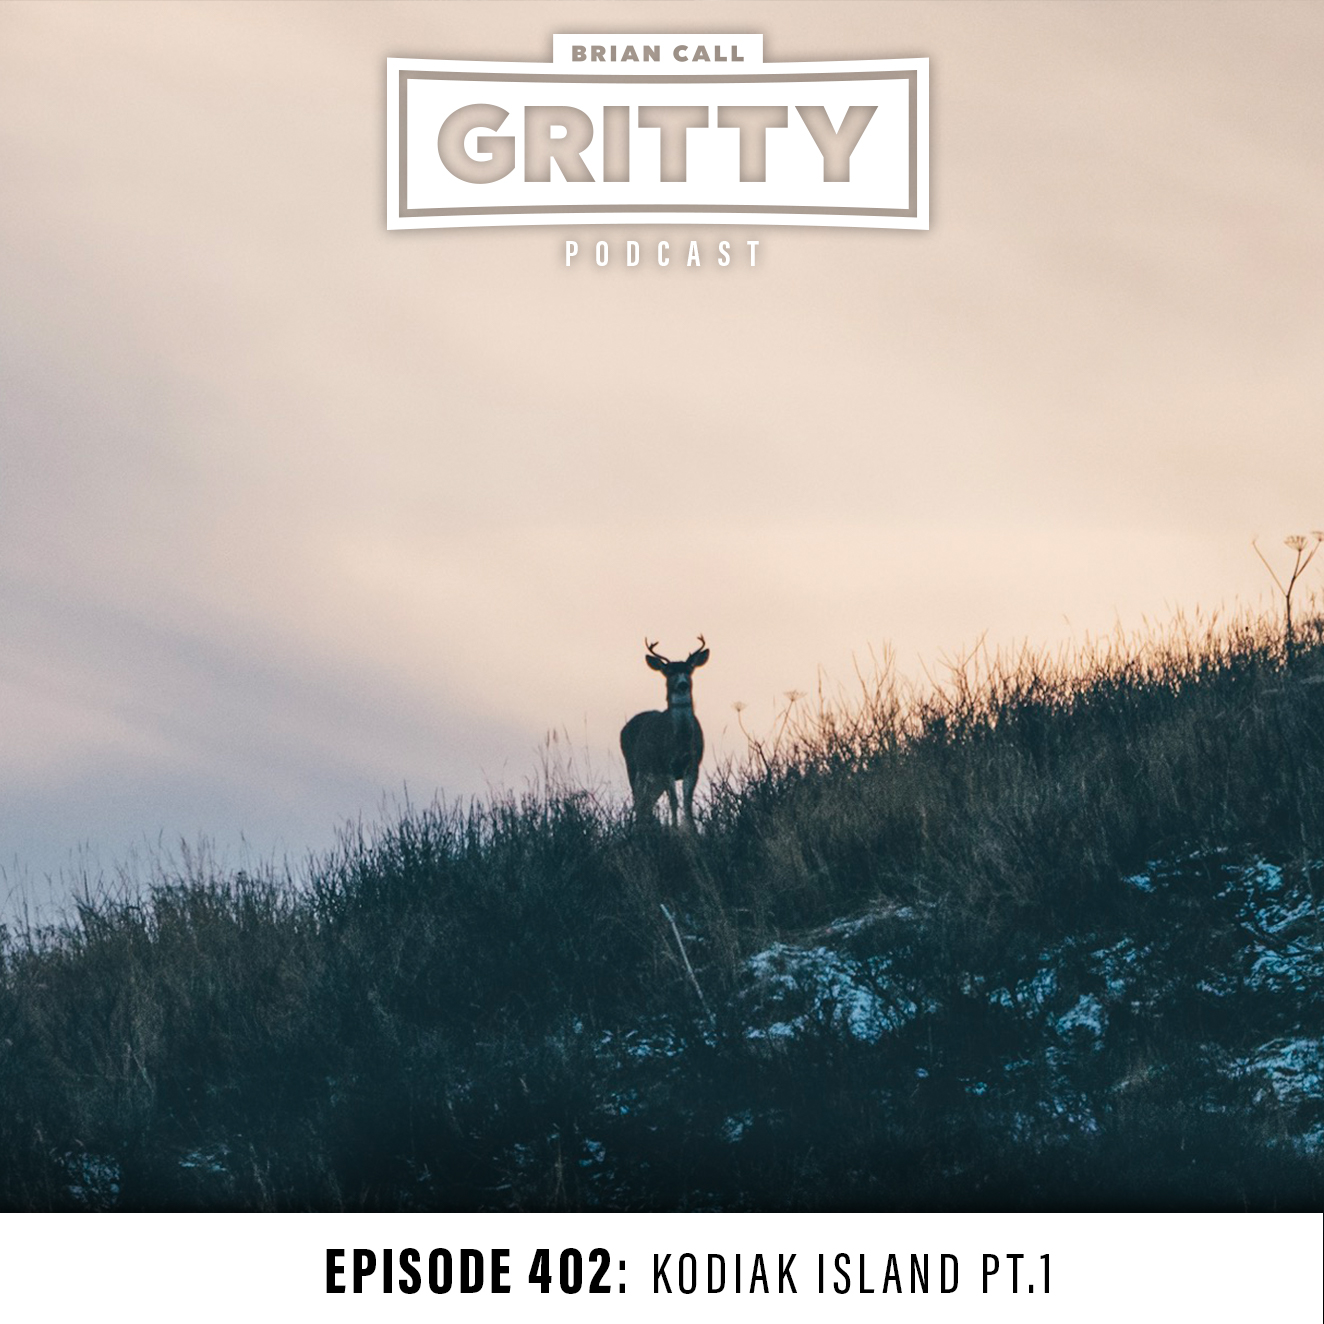 EPISODE 402: KODIAK ISLAND PT.1